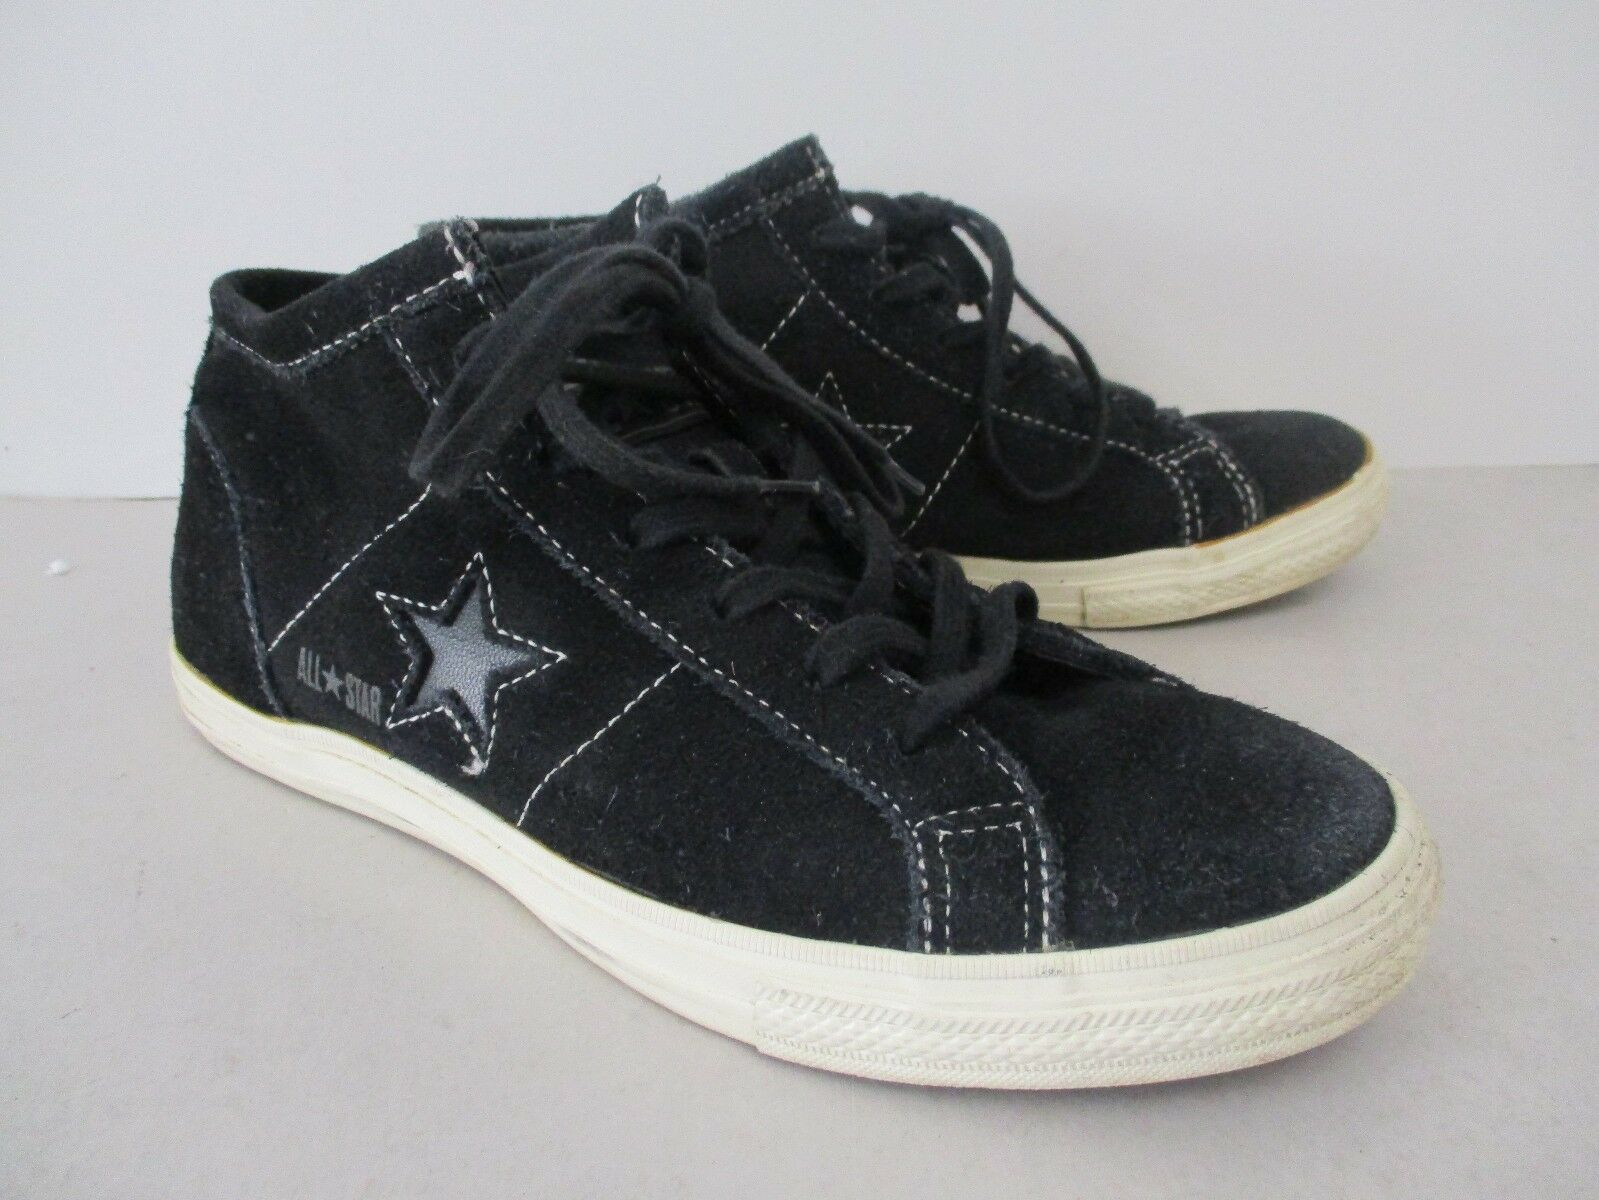 CONVERSE ALL STAR - CHUCKS - HIGH Gr. - SNEAKER; Schwarz, Wild-Leder, Gr. HIGH 38 / UK5 b962b9